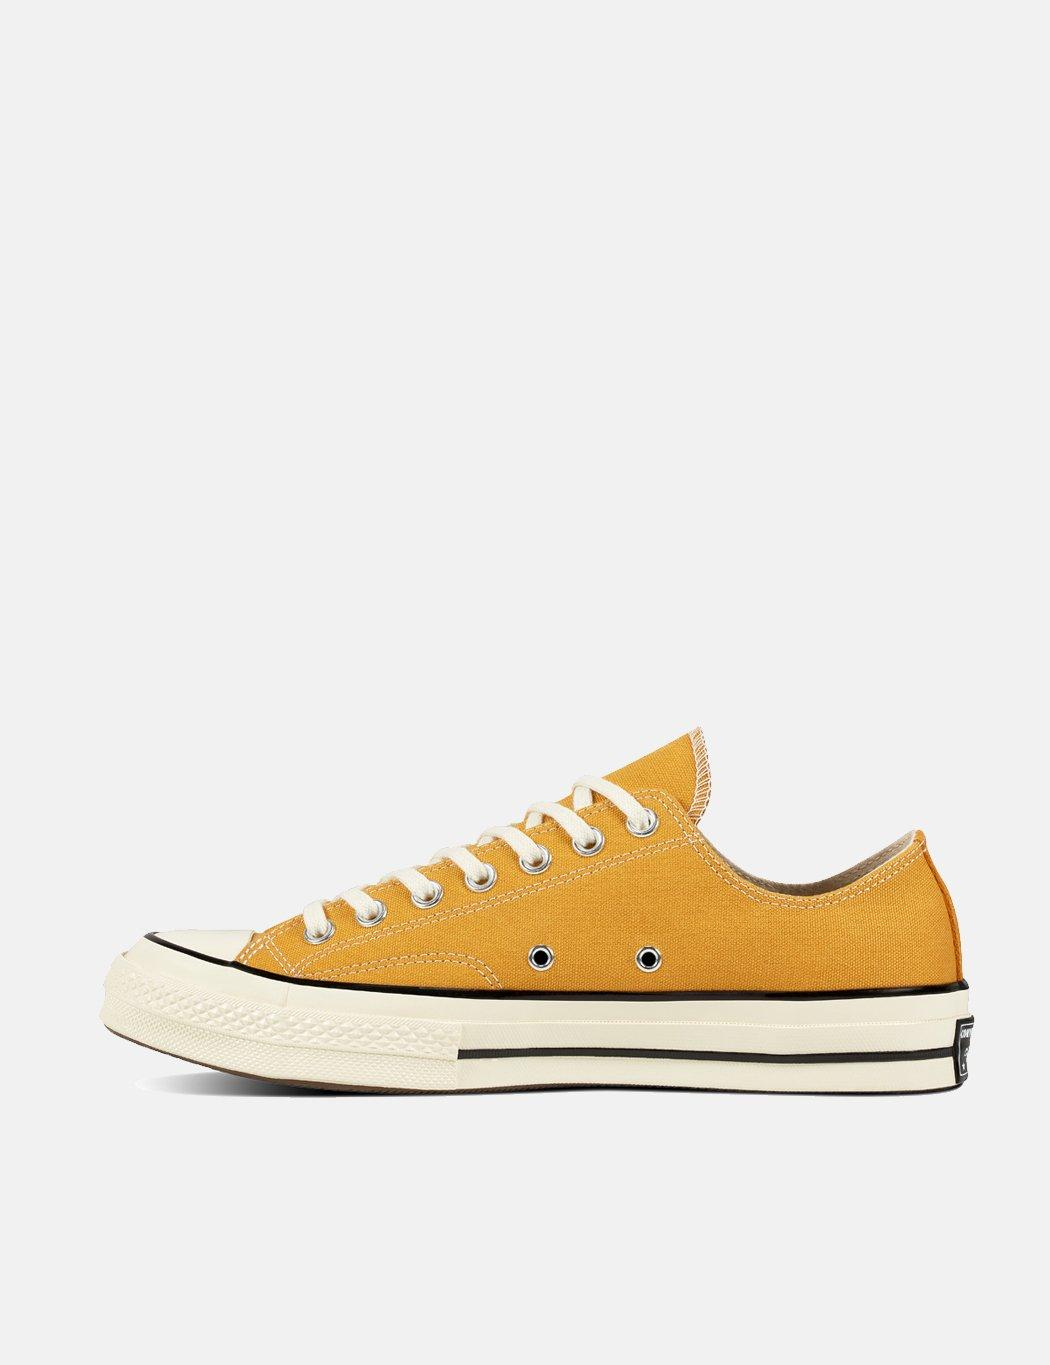 5df4e4c02922a3 Lyst - Converse 70 s Chuck Taylor Low Canvas (162063c) in Yellow for Men